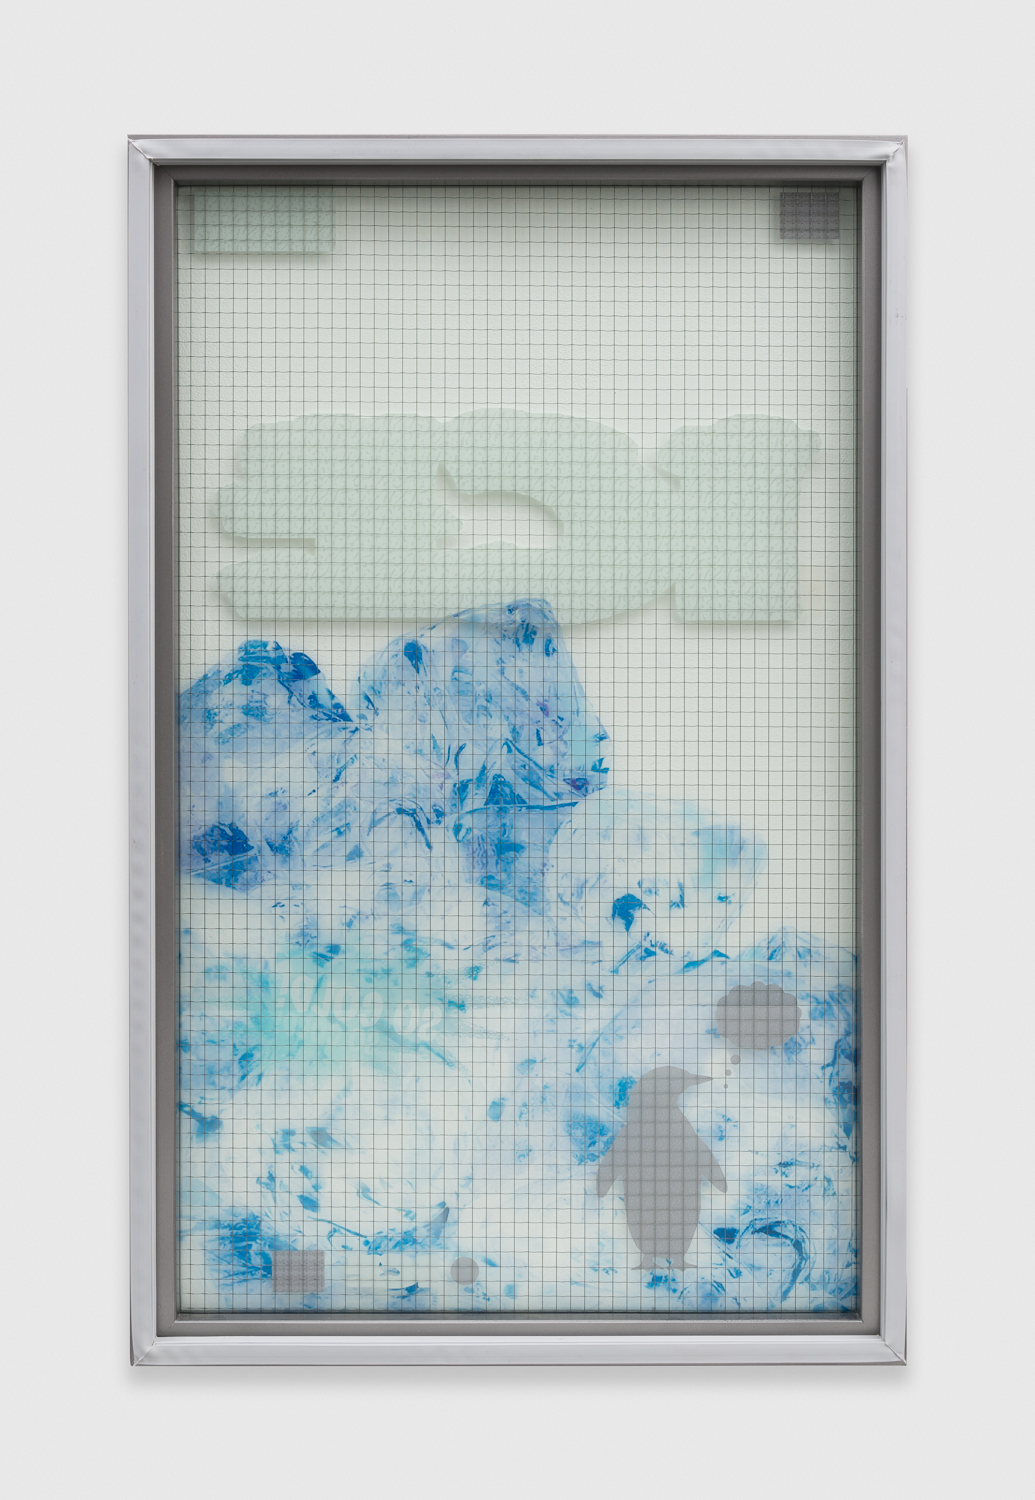 Chris Bradley  Freezer Door (Penguin)  2014 Wire glass, printed clear film, wood, rubber gasket 44h x 27w x 2d in CB101